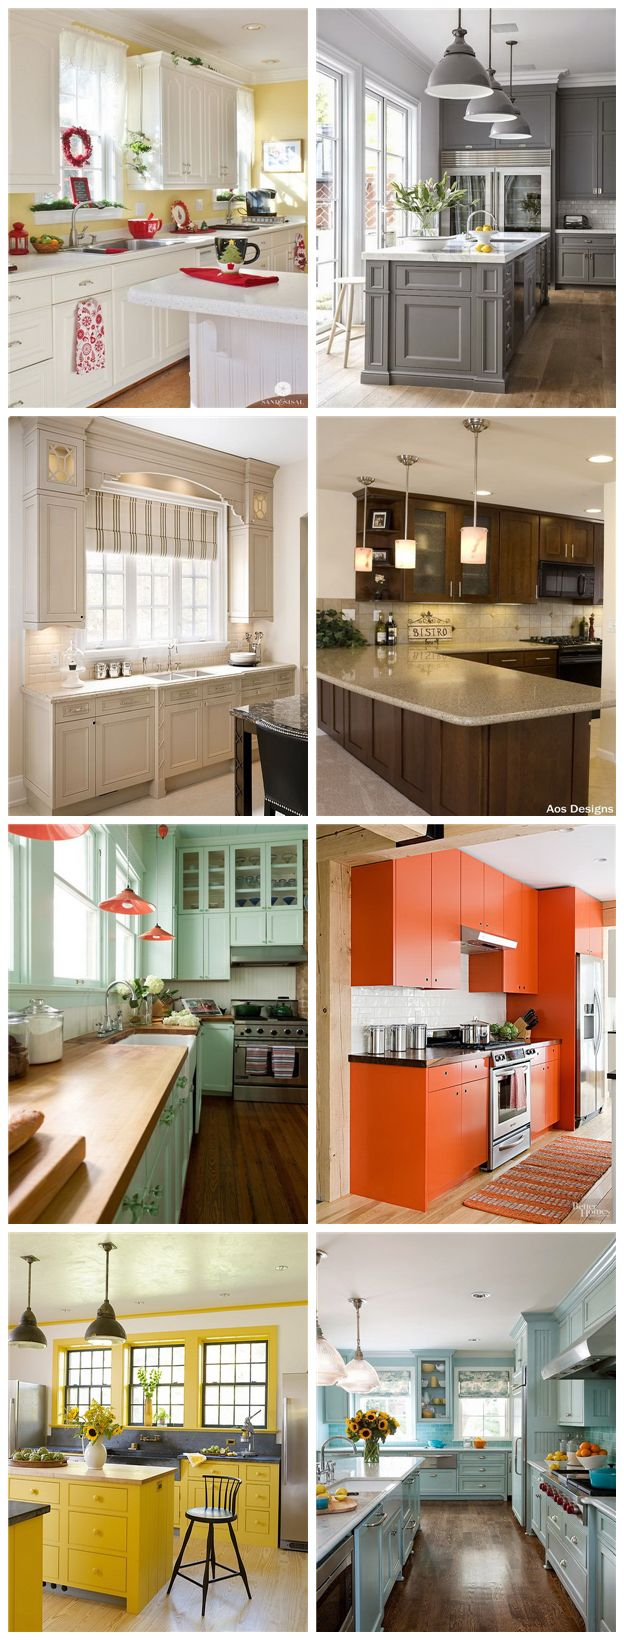 Most Popular Kitchen Cabinet Paint Color Ideas - For Creative Juice